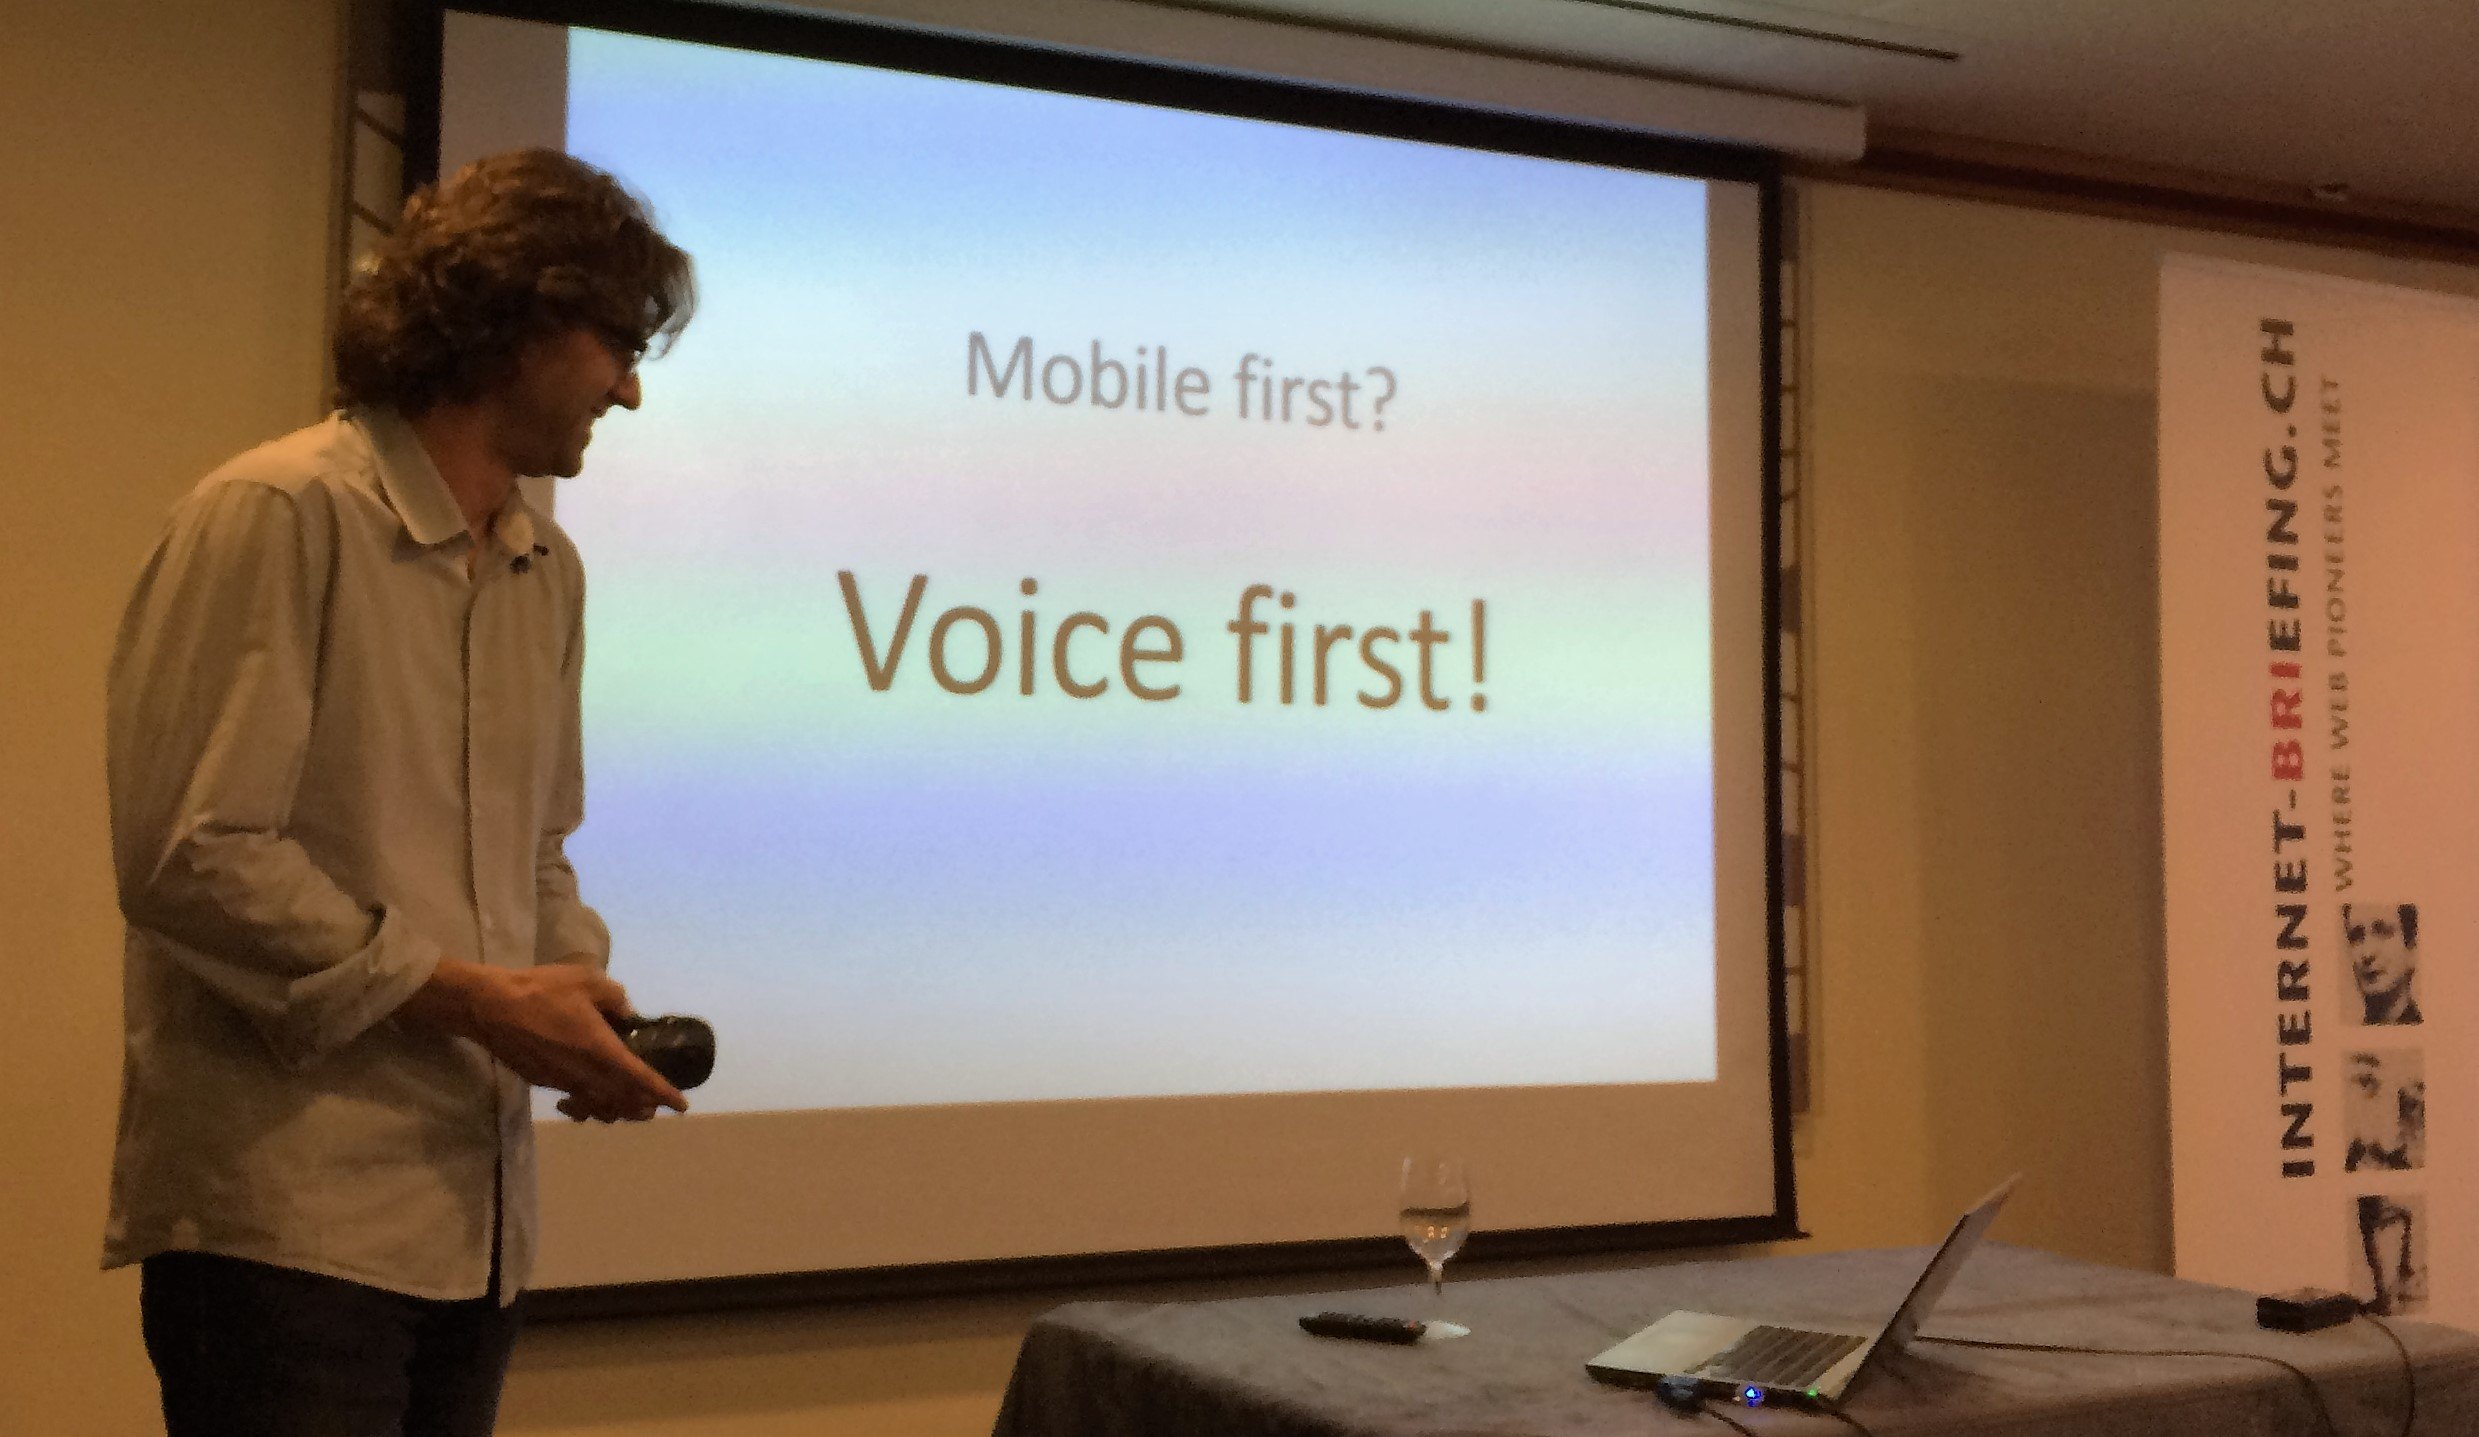 Daniel Niklaus: Voice First statt Mobile First